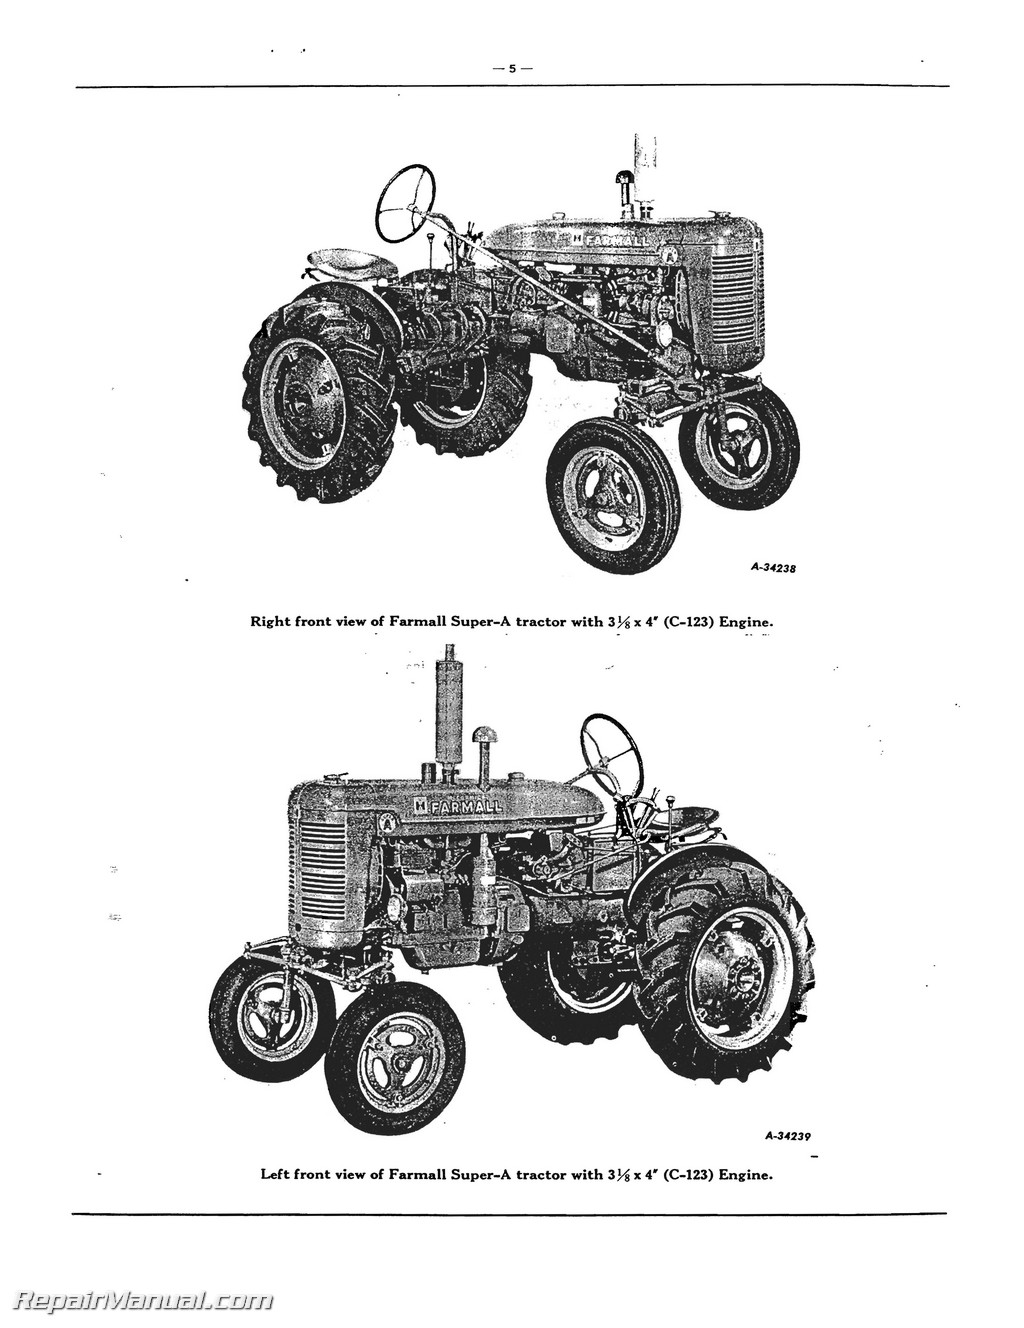 hight resolution of farmall h engine parts diagram wiring library farmall h carburetor diagram farmall h engine parts diagram